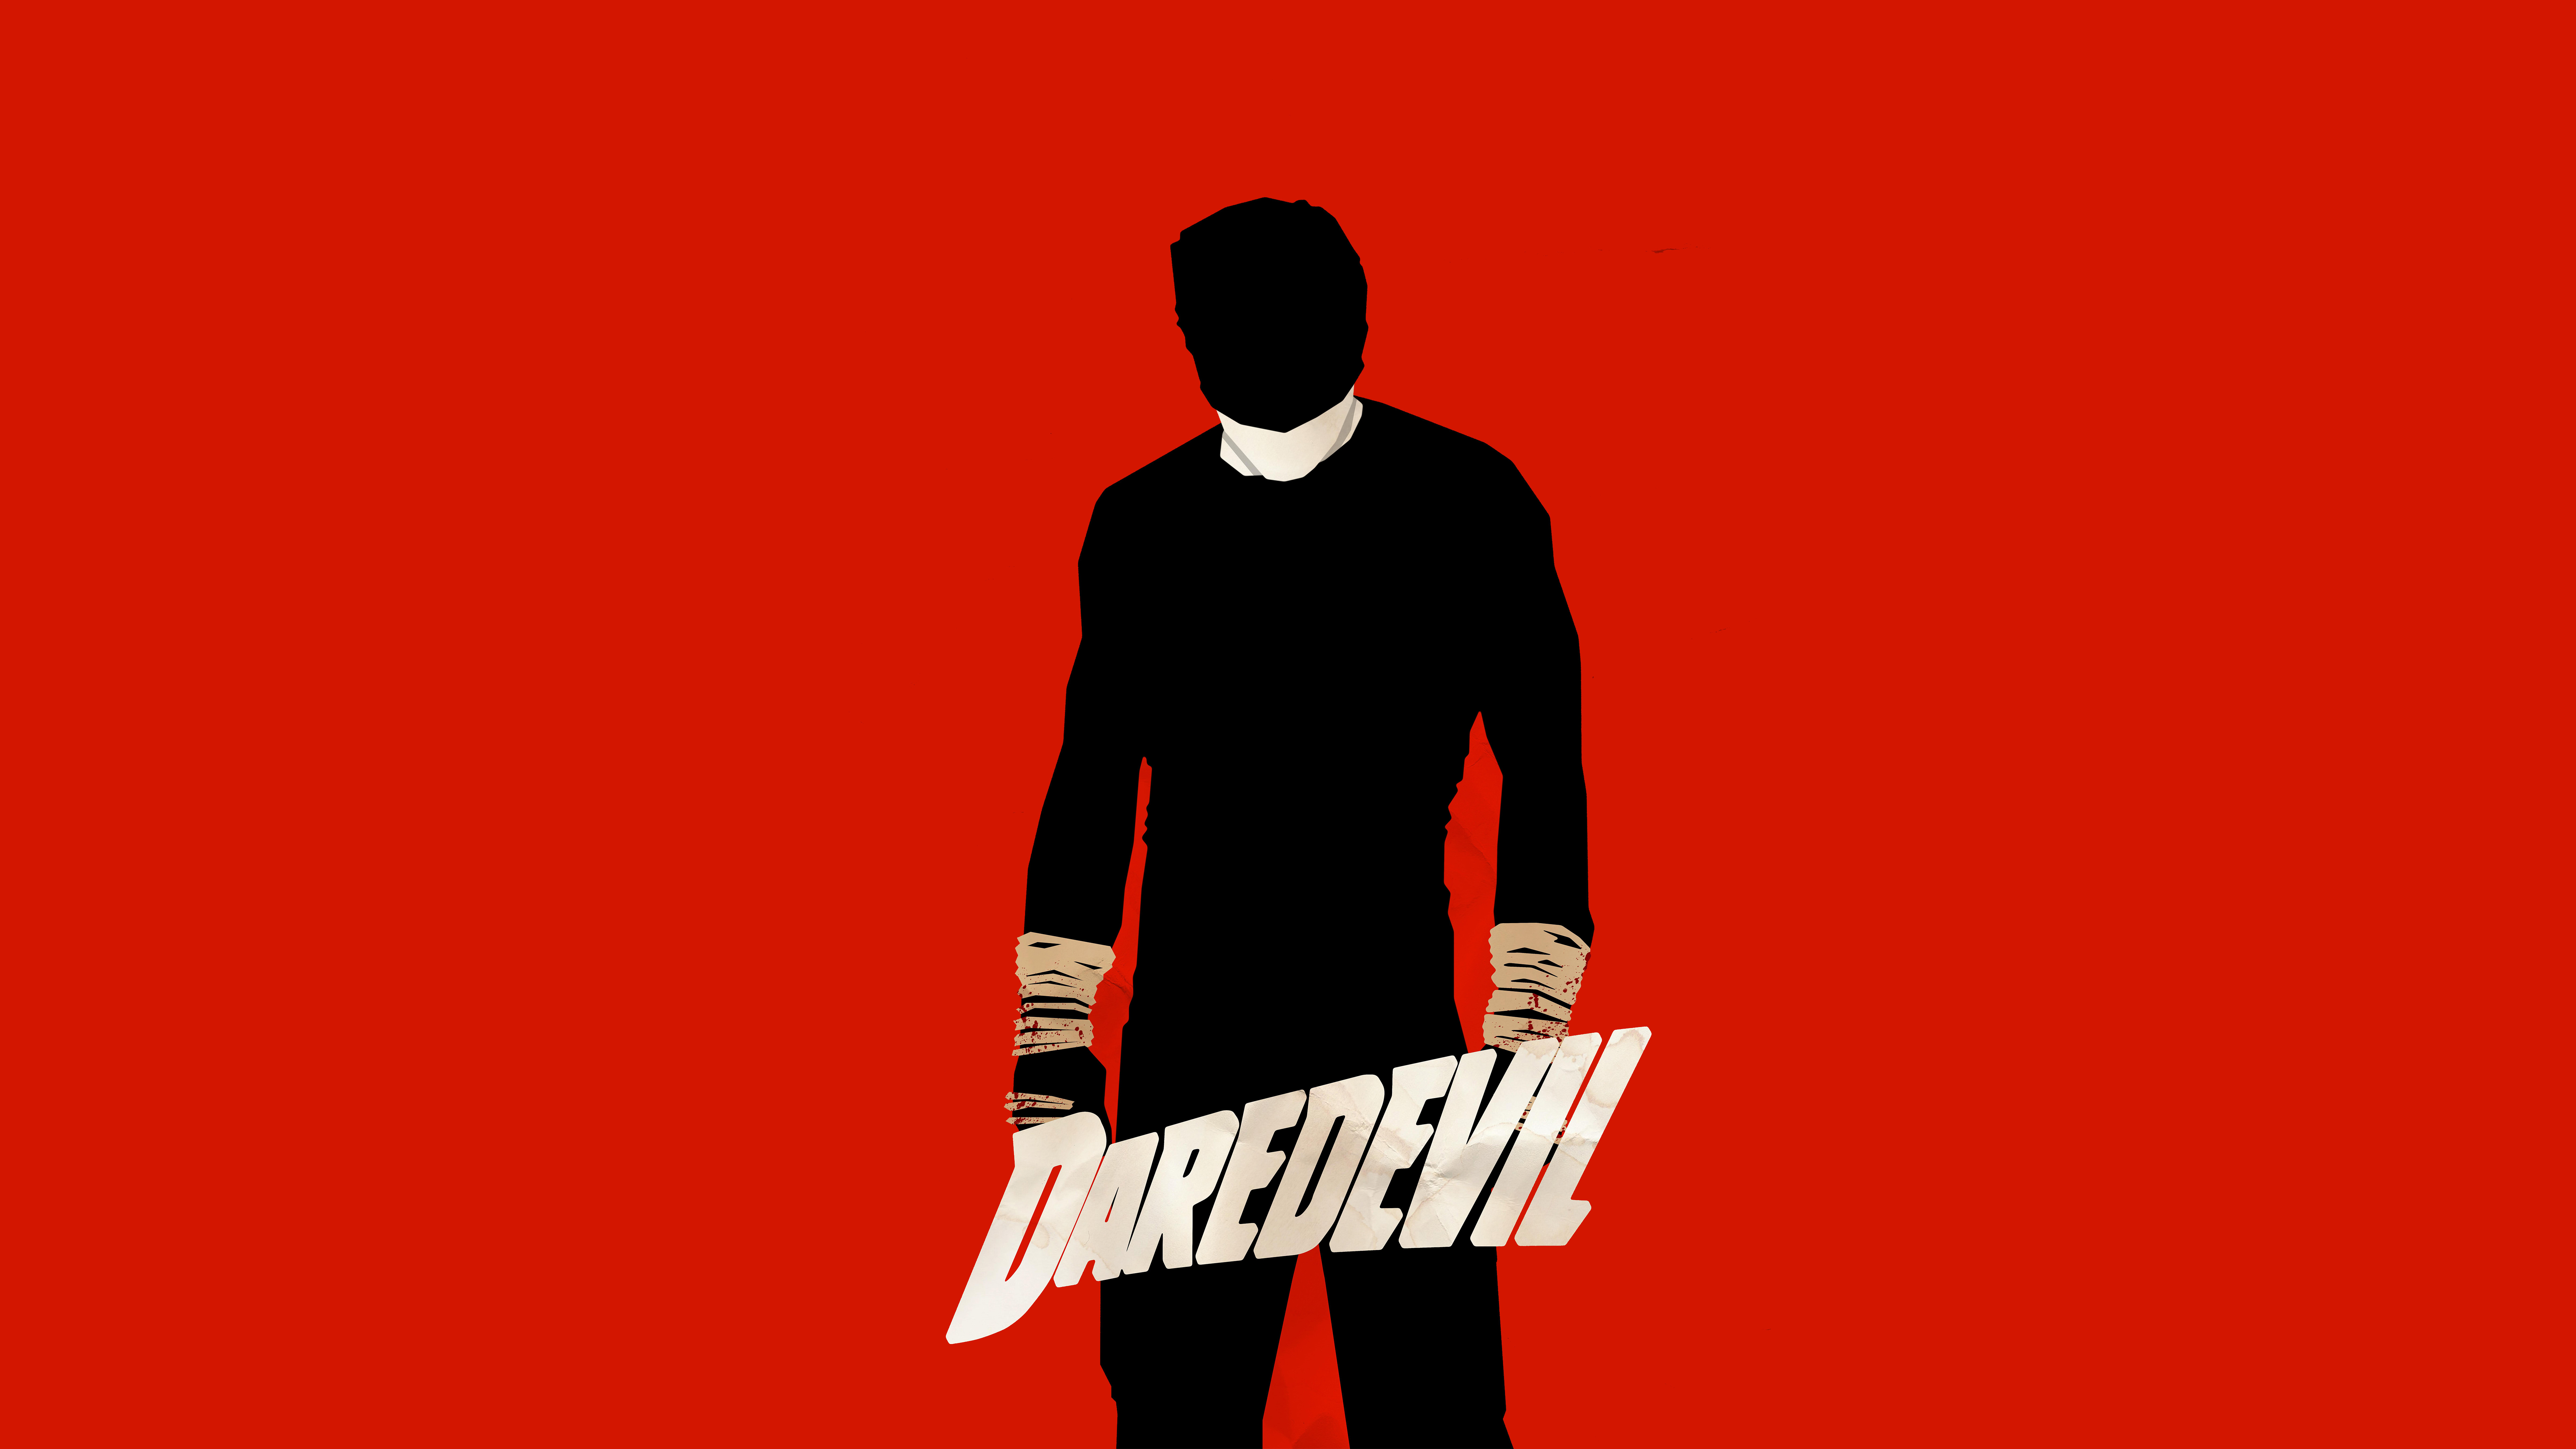 Daredevil Minimalism 8k Hd Tv Shows 4k Wallpapers Images